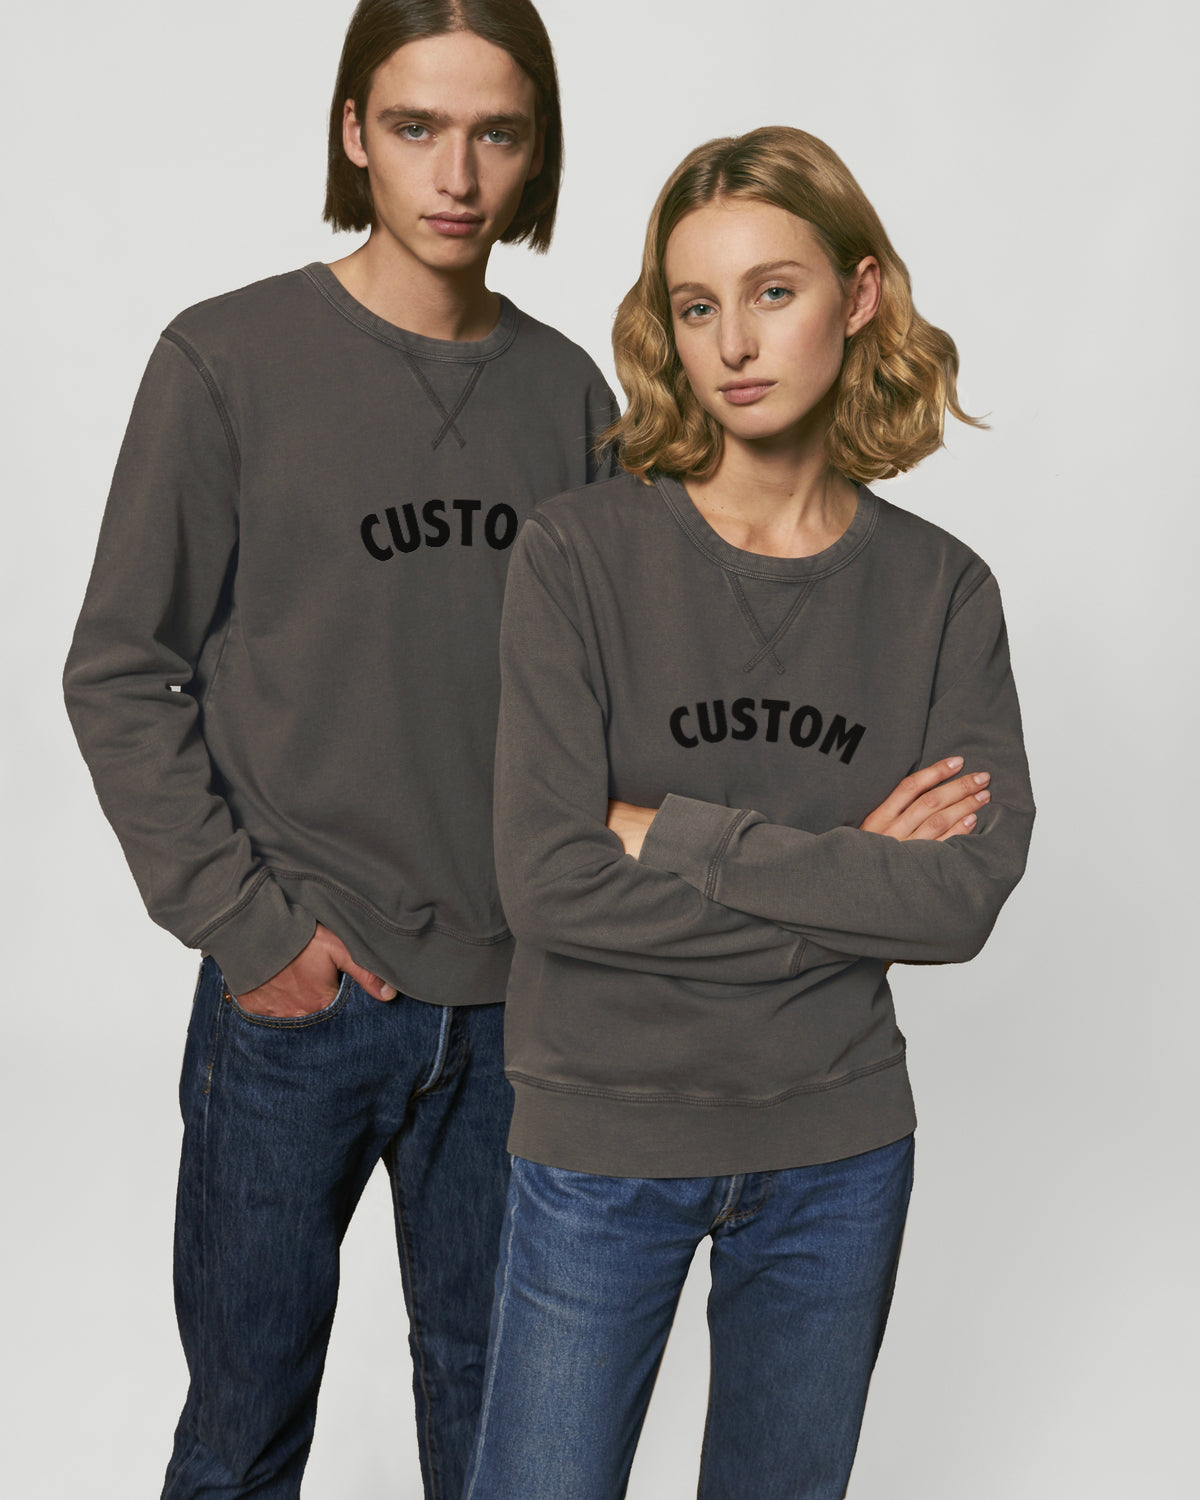 UNISEX VINTAGE GARMENT DYED CREW NECK SWEATSHIRT - customisable centre chest embroidery